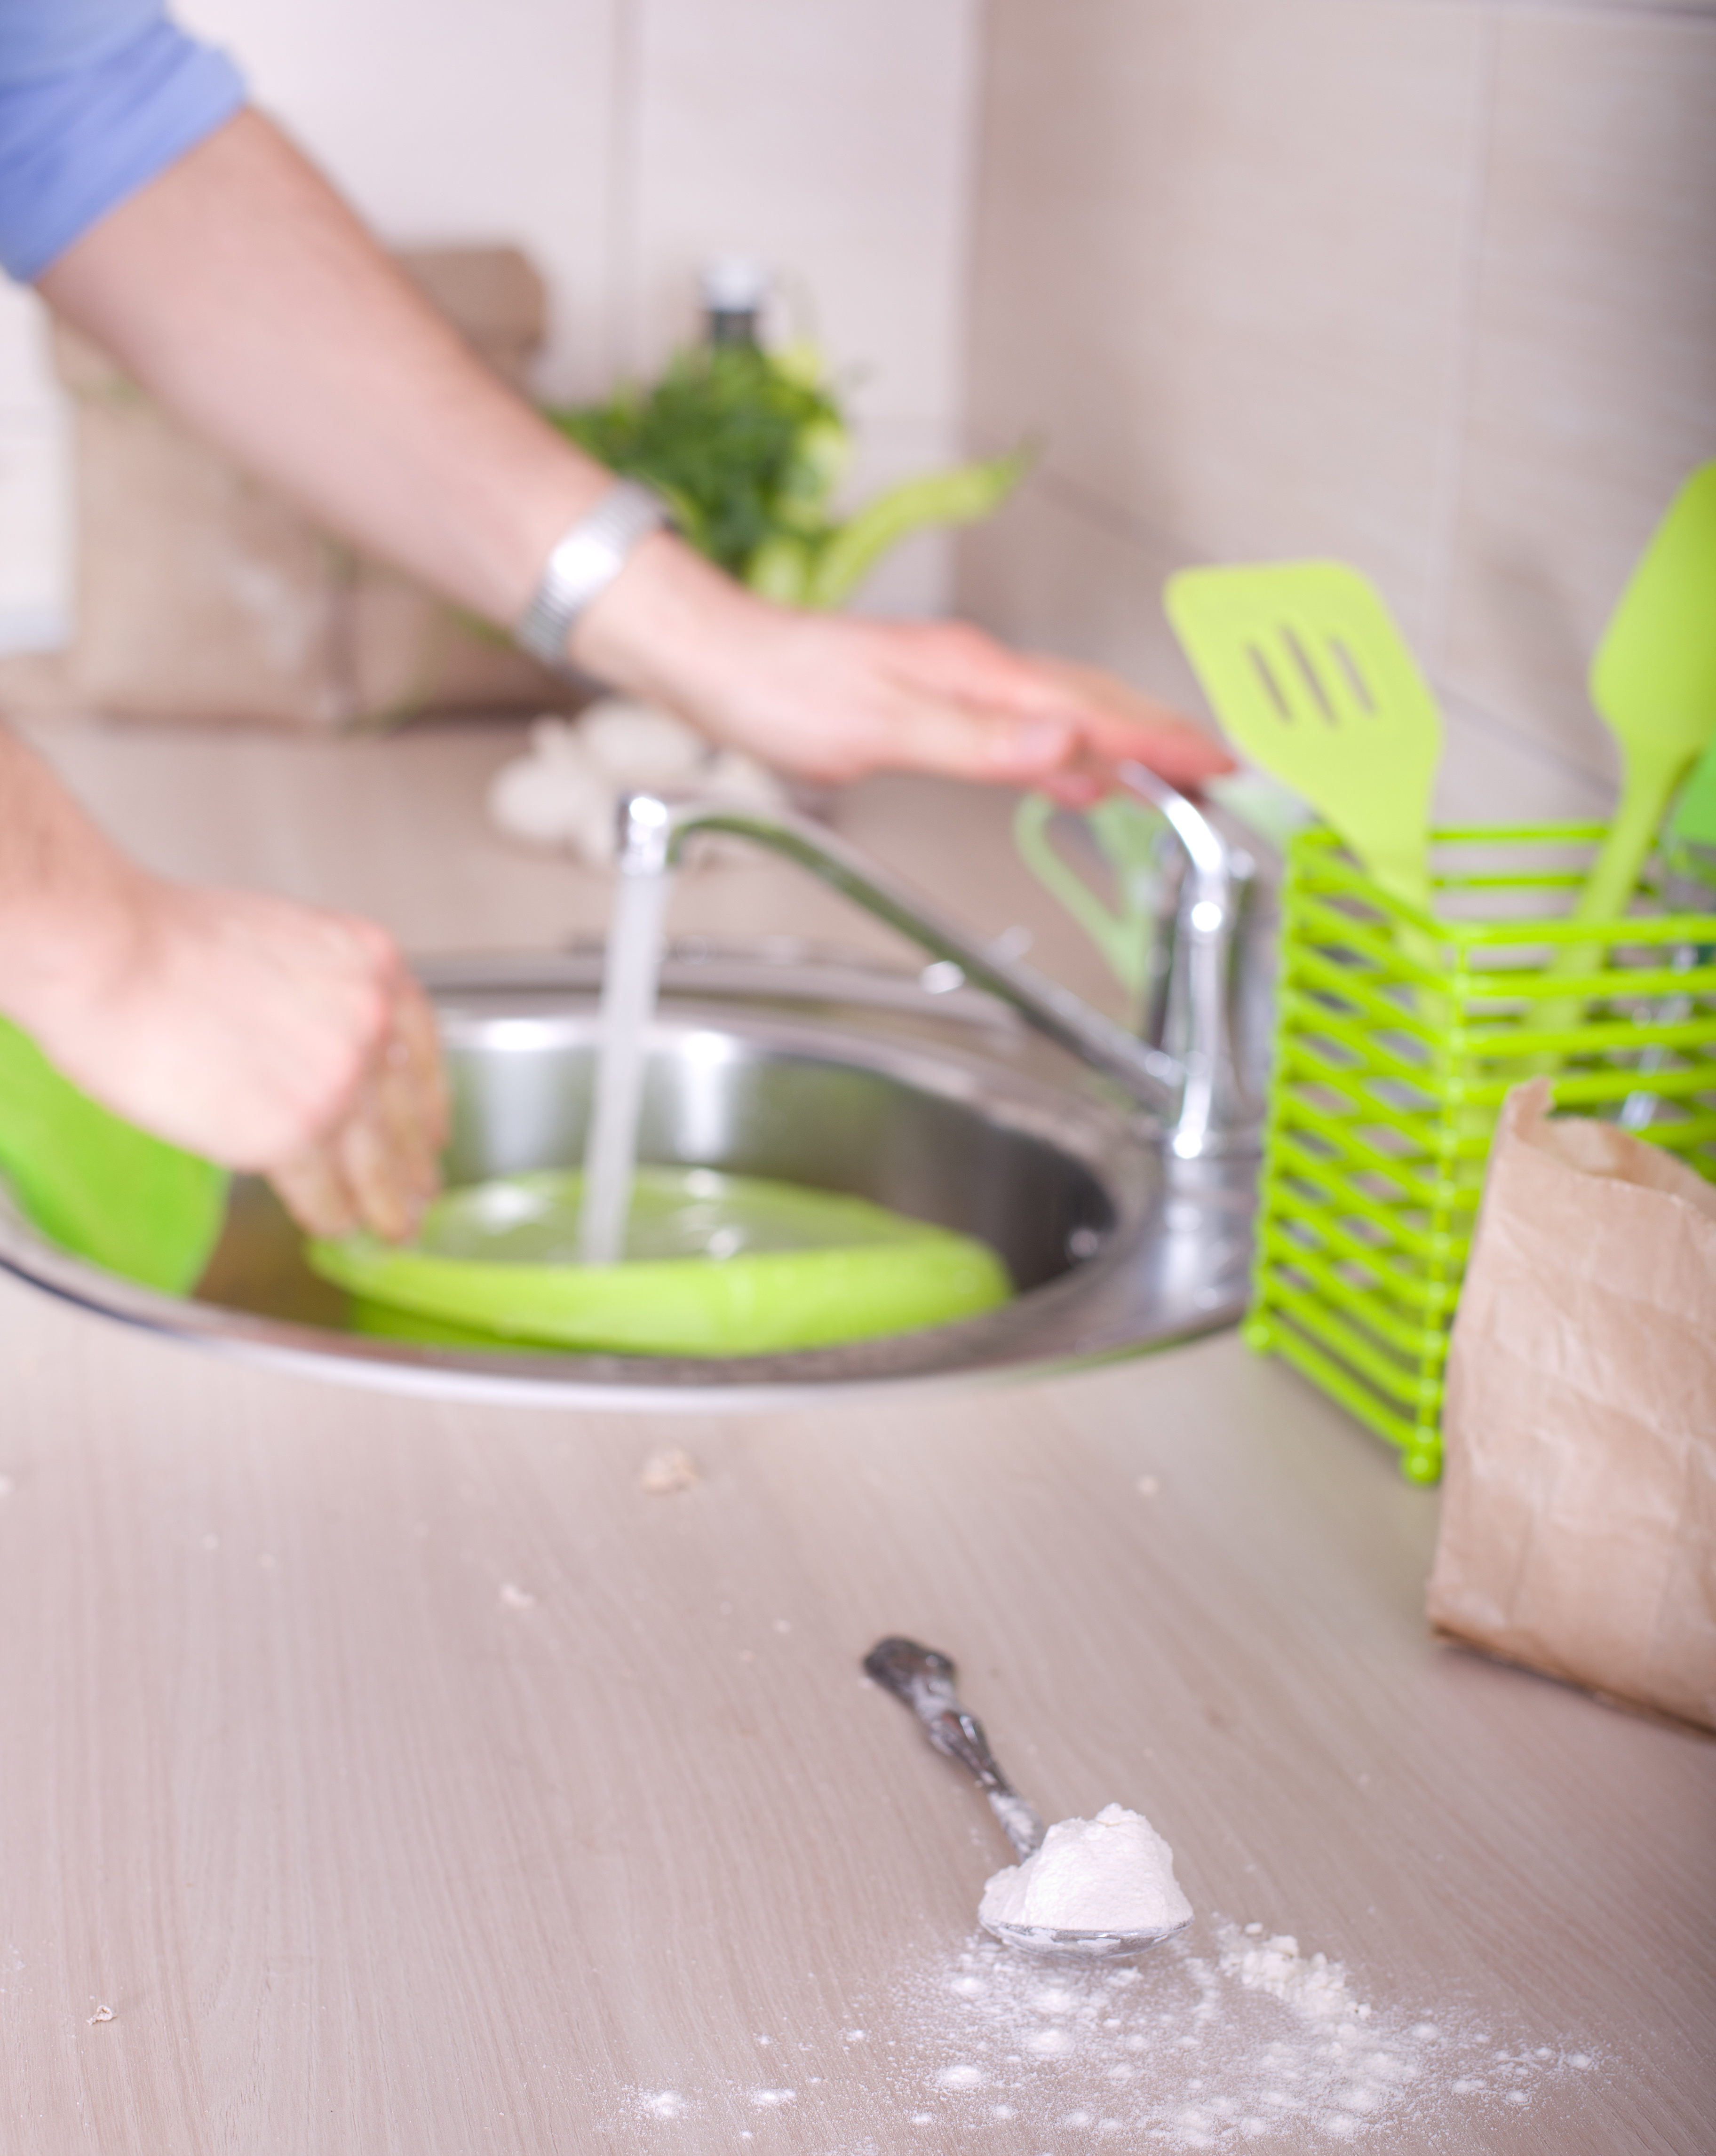 Cooking is great, but those dishes! What a mess it can make! Here is how to keep the dishes from taking over the kitchen!